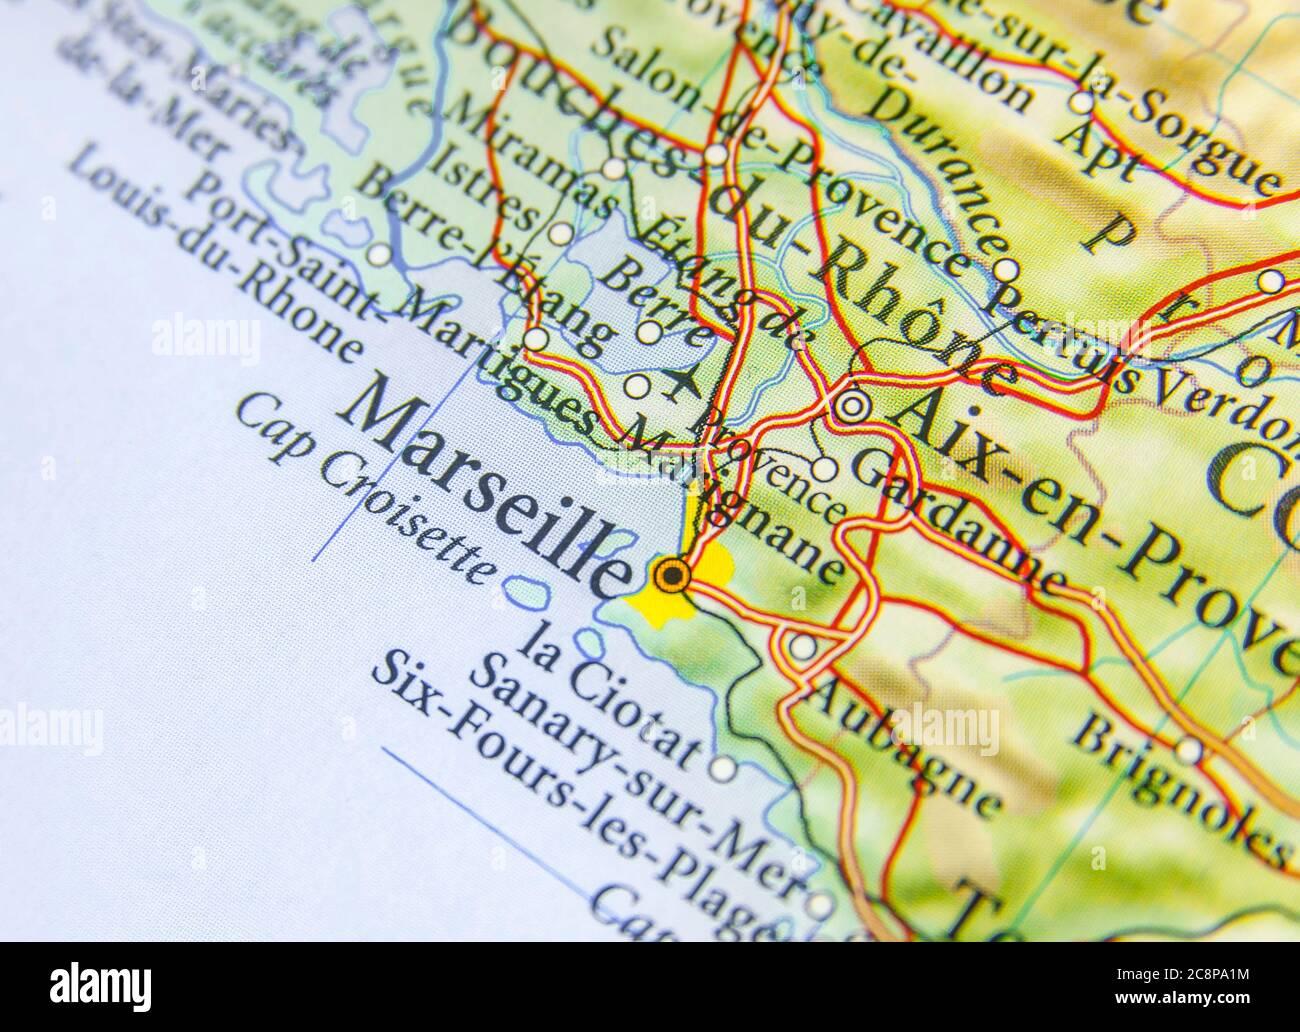 Picture of: Geographic Map Of European Country France With Marseille City Stock Photo Alamy